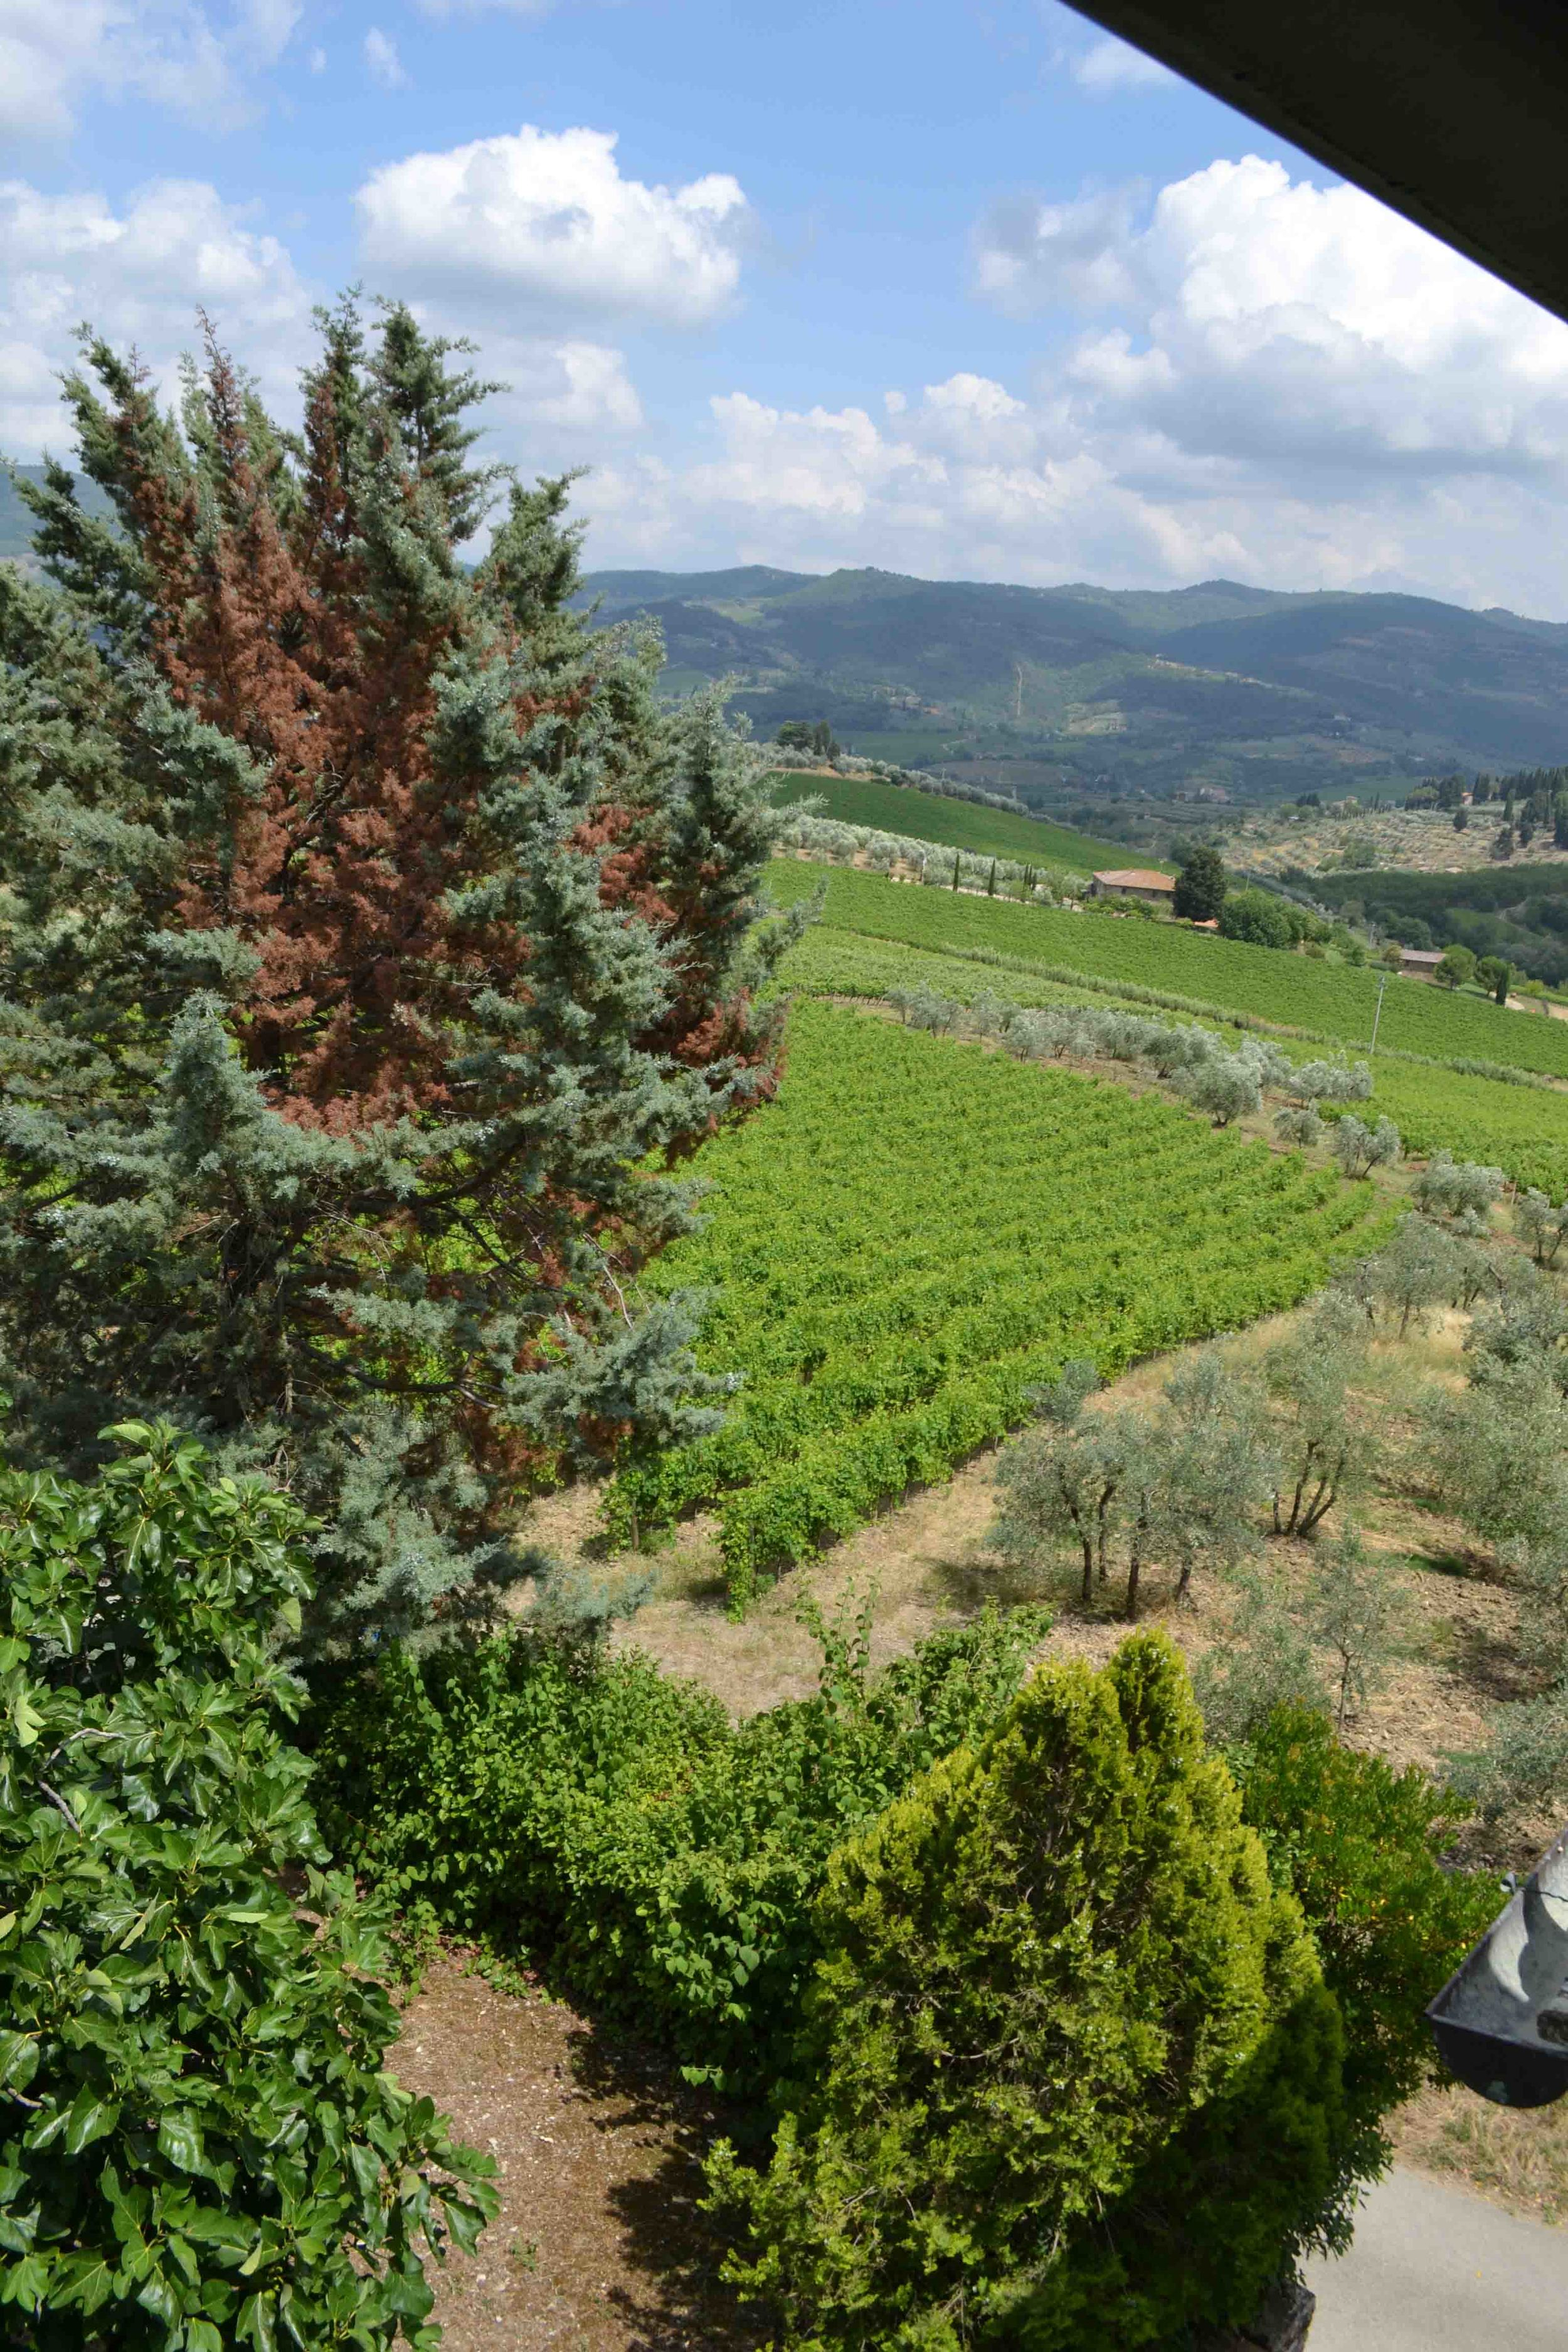 View from my window towards Greve in Chianti